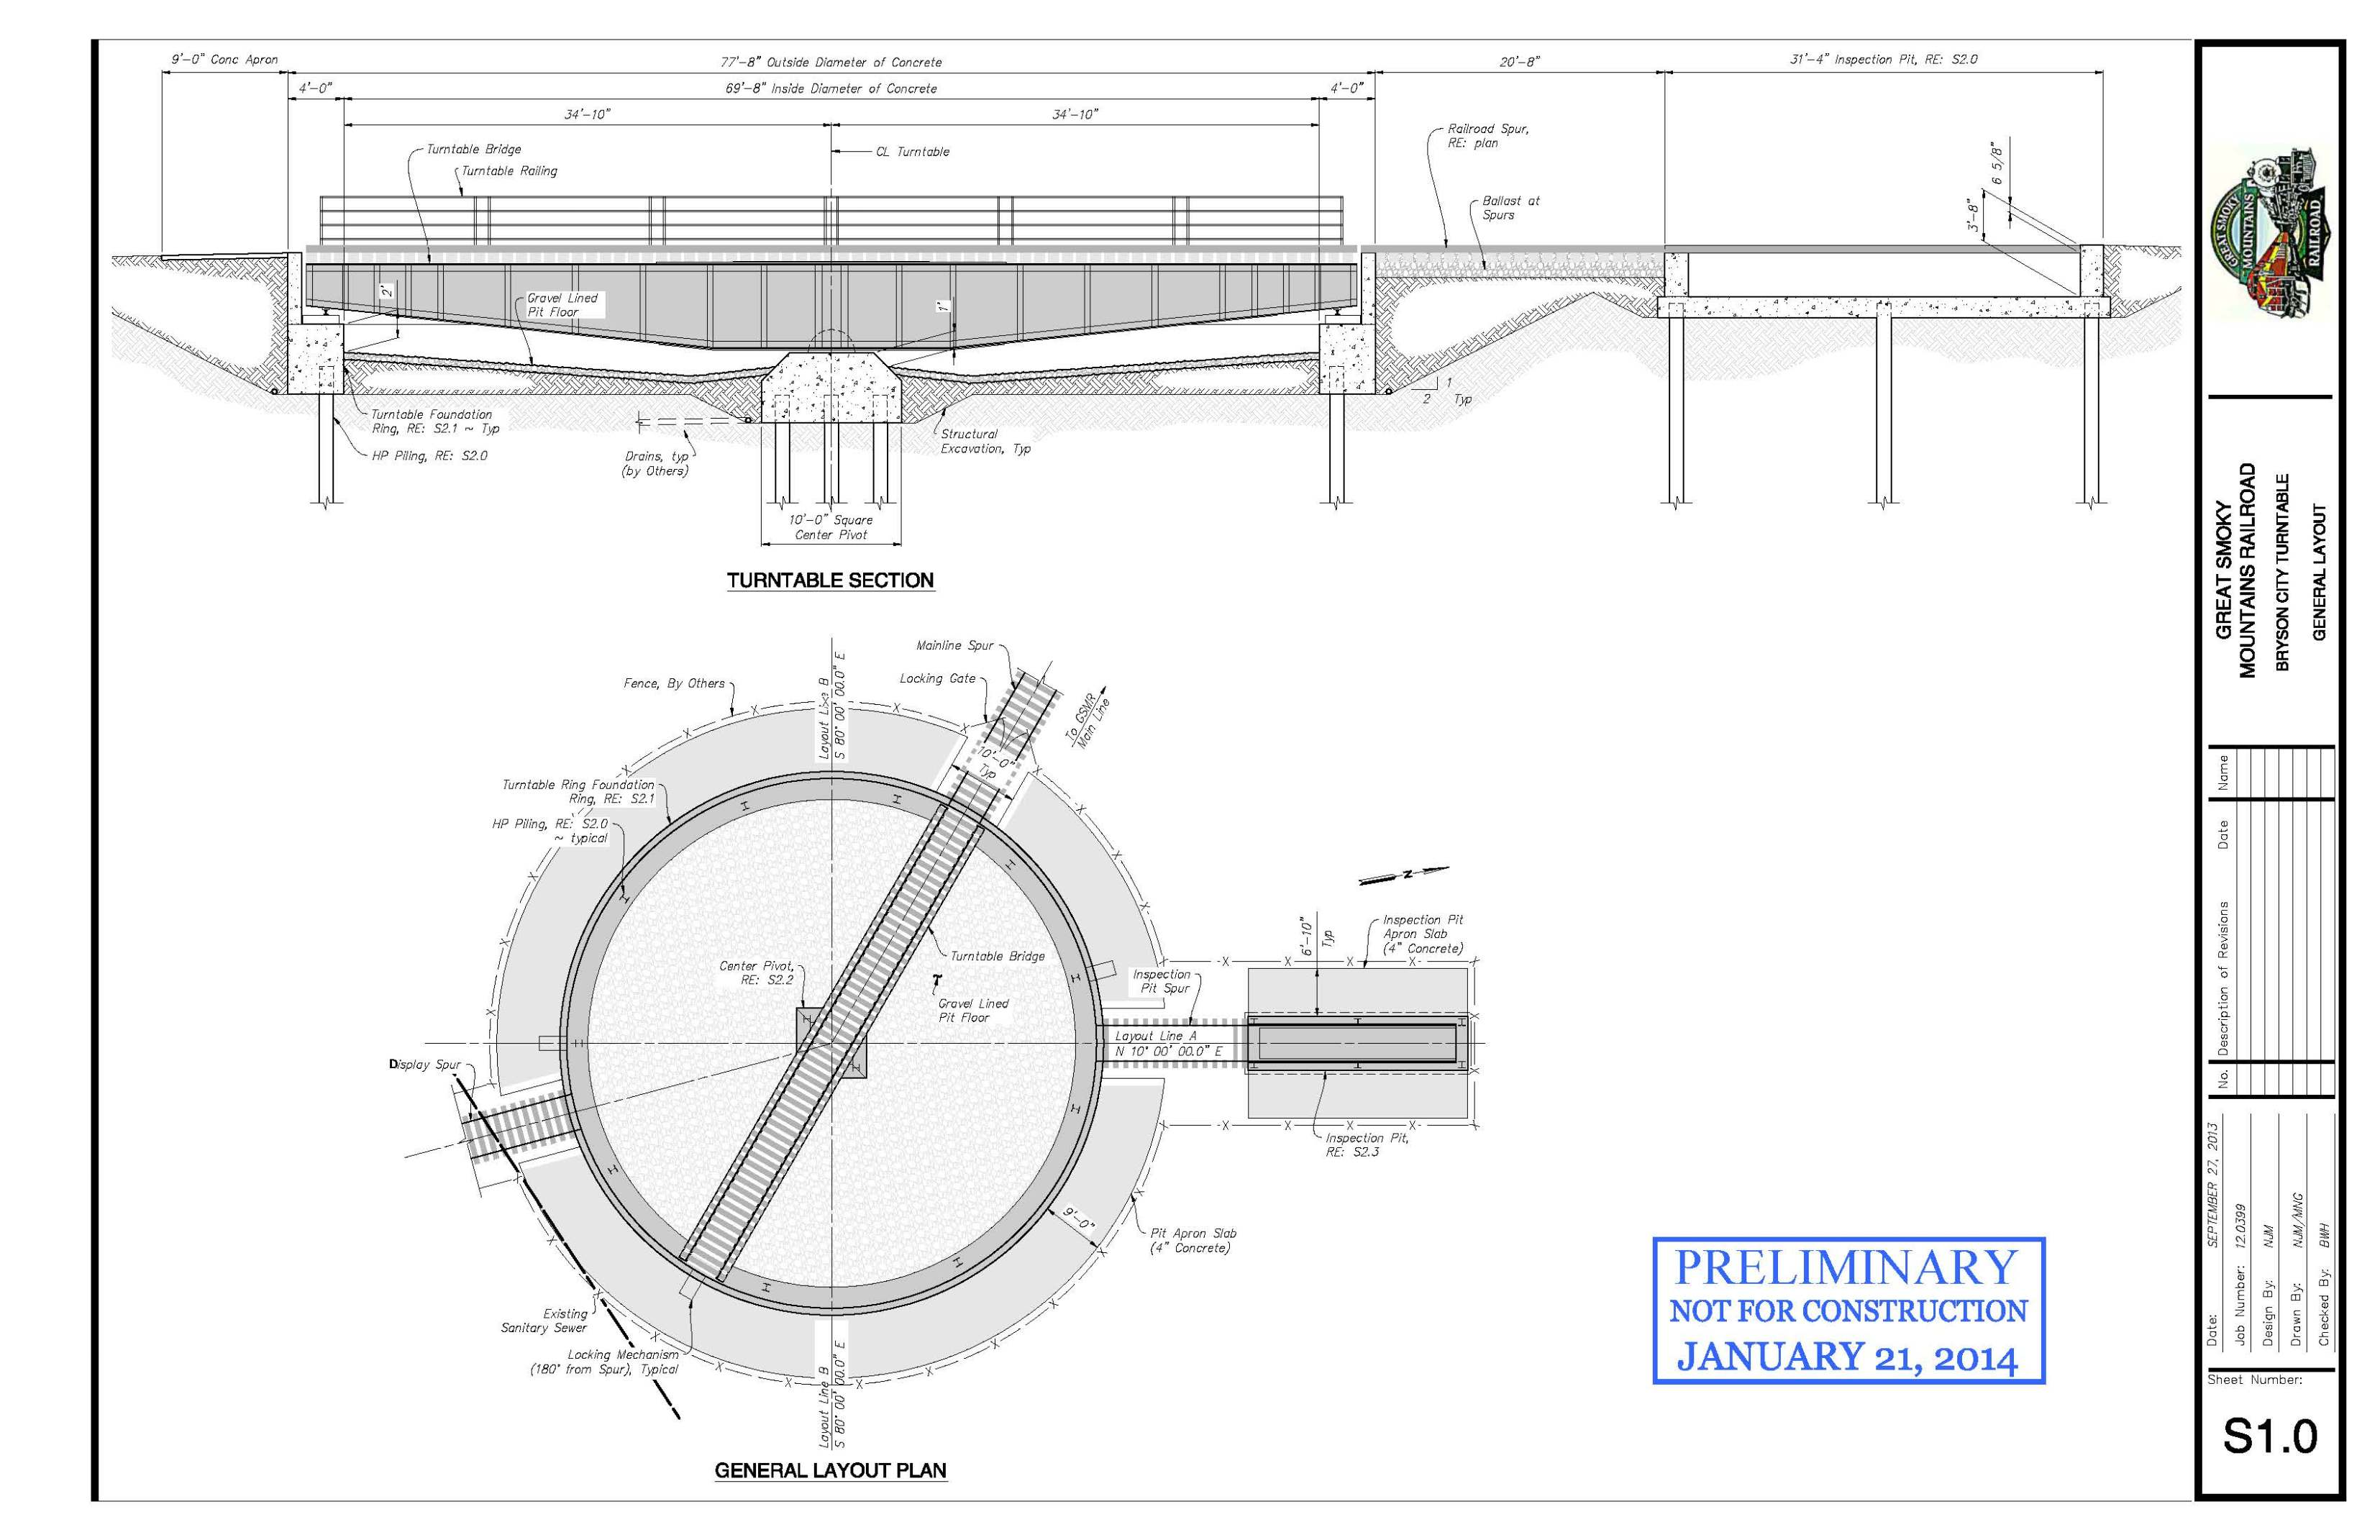 Bryson City Visual Plan for Turntable Installation